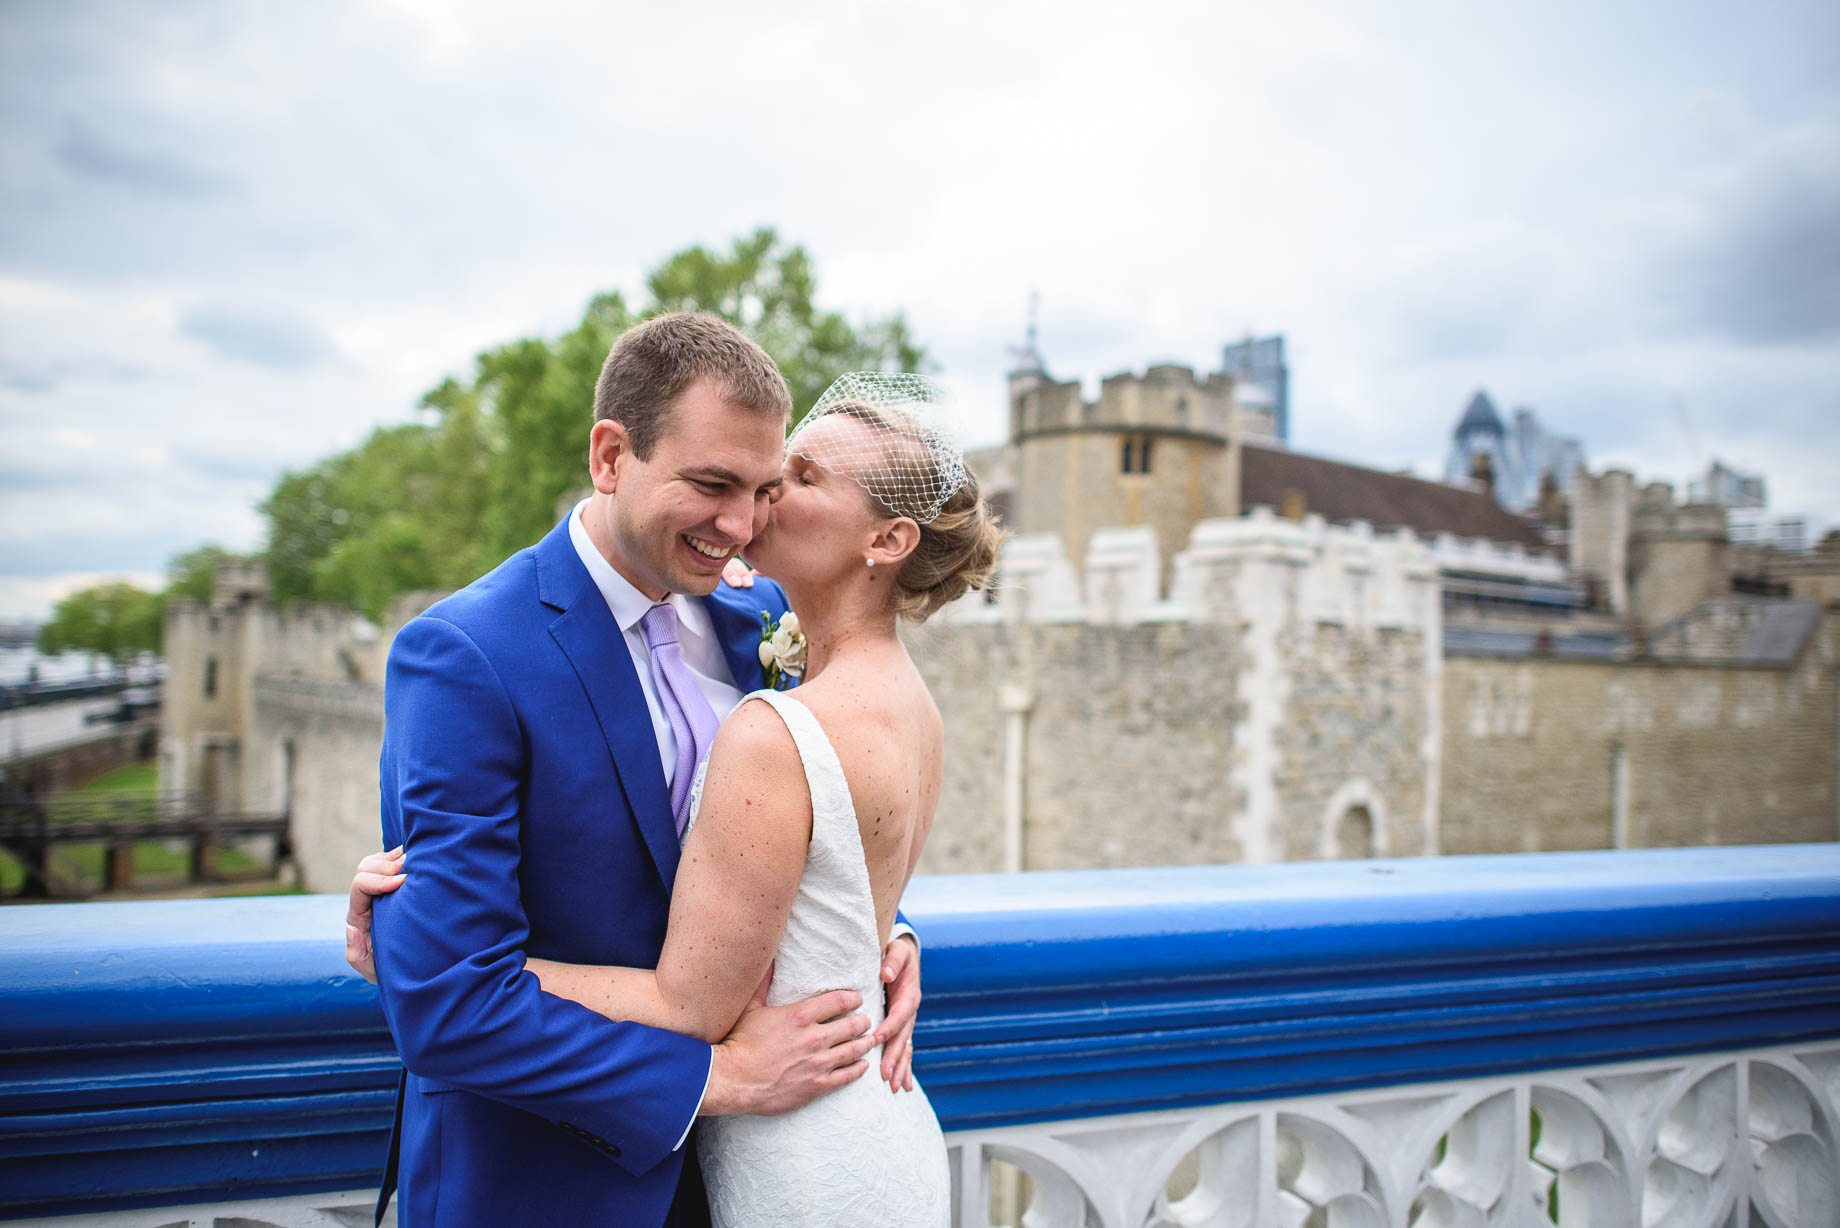 Bllomsbury House wedding photography in London - Katie and Taylor (137 of 156)